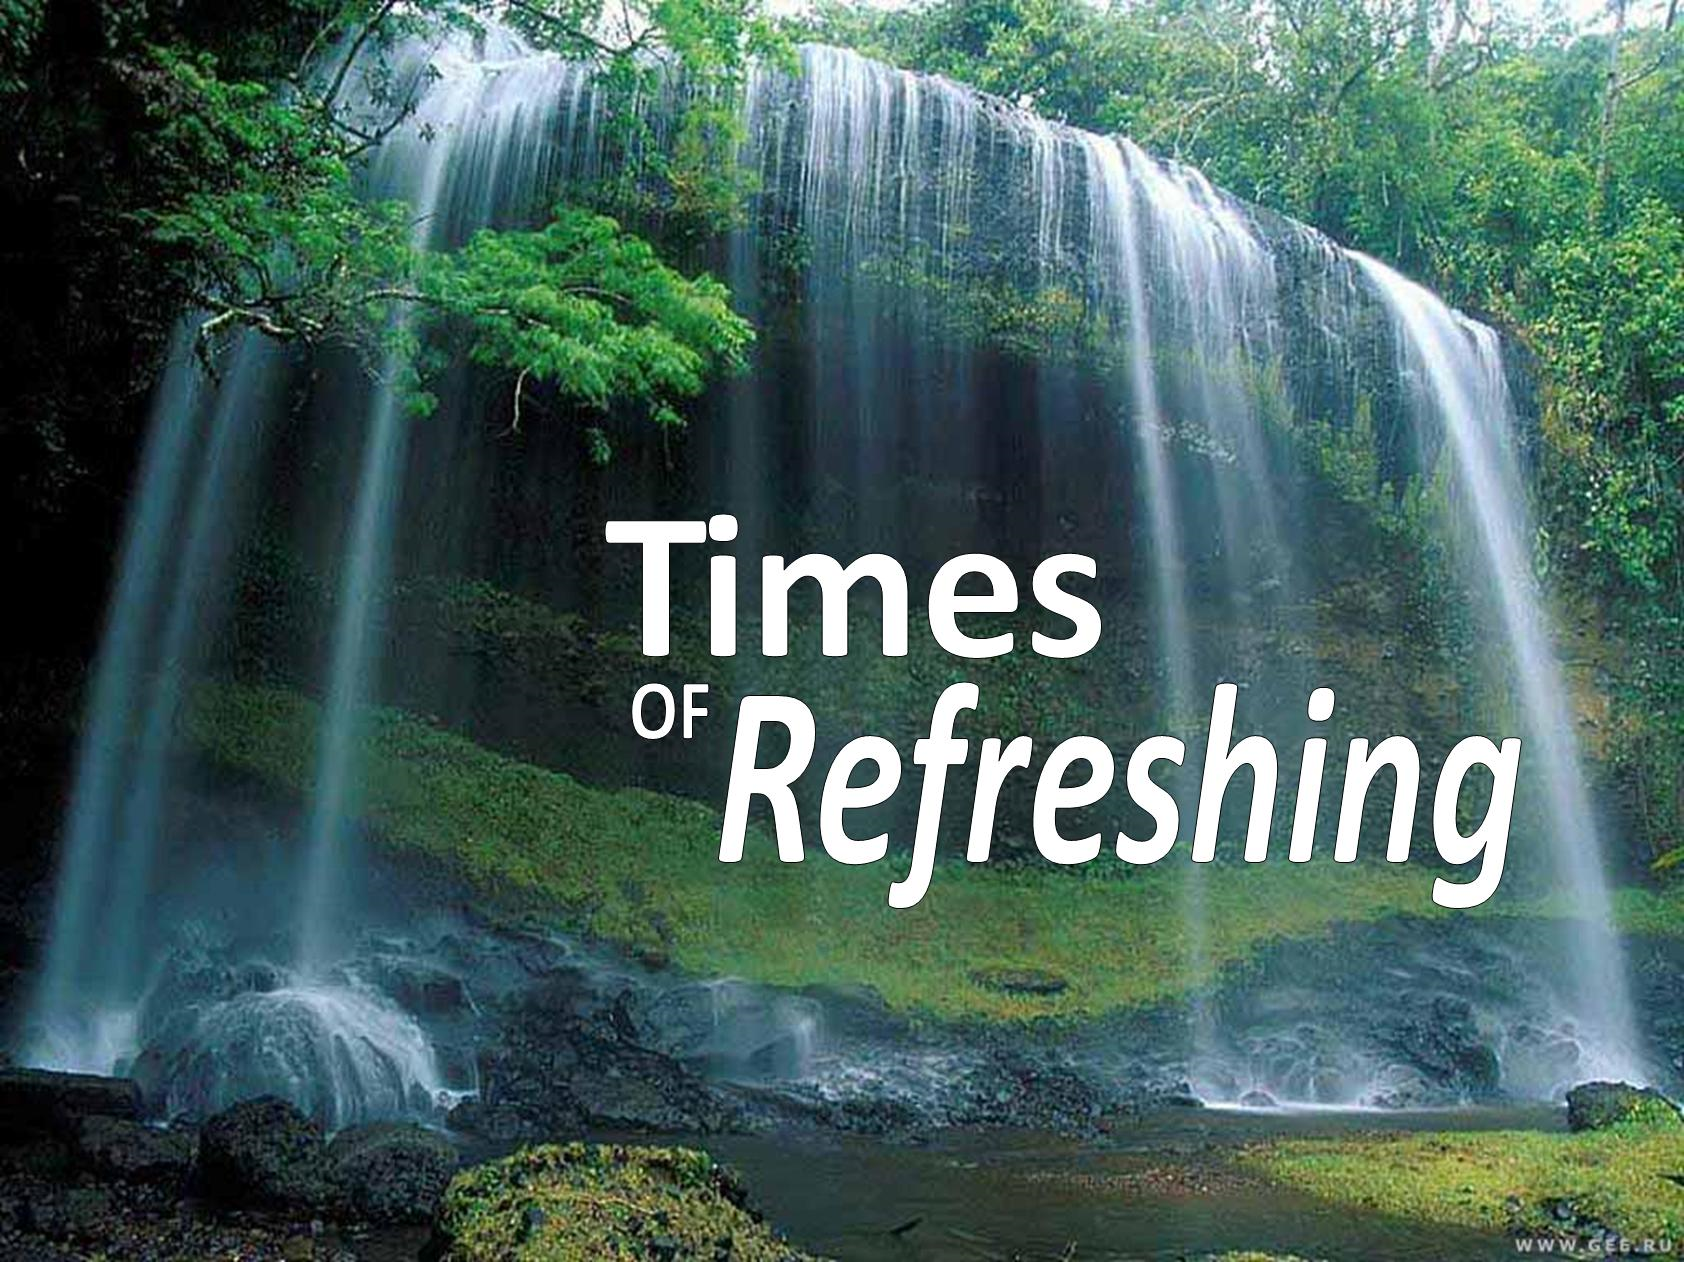 Times of Refreshing | From the Inside Out